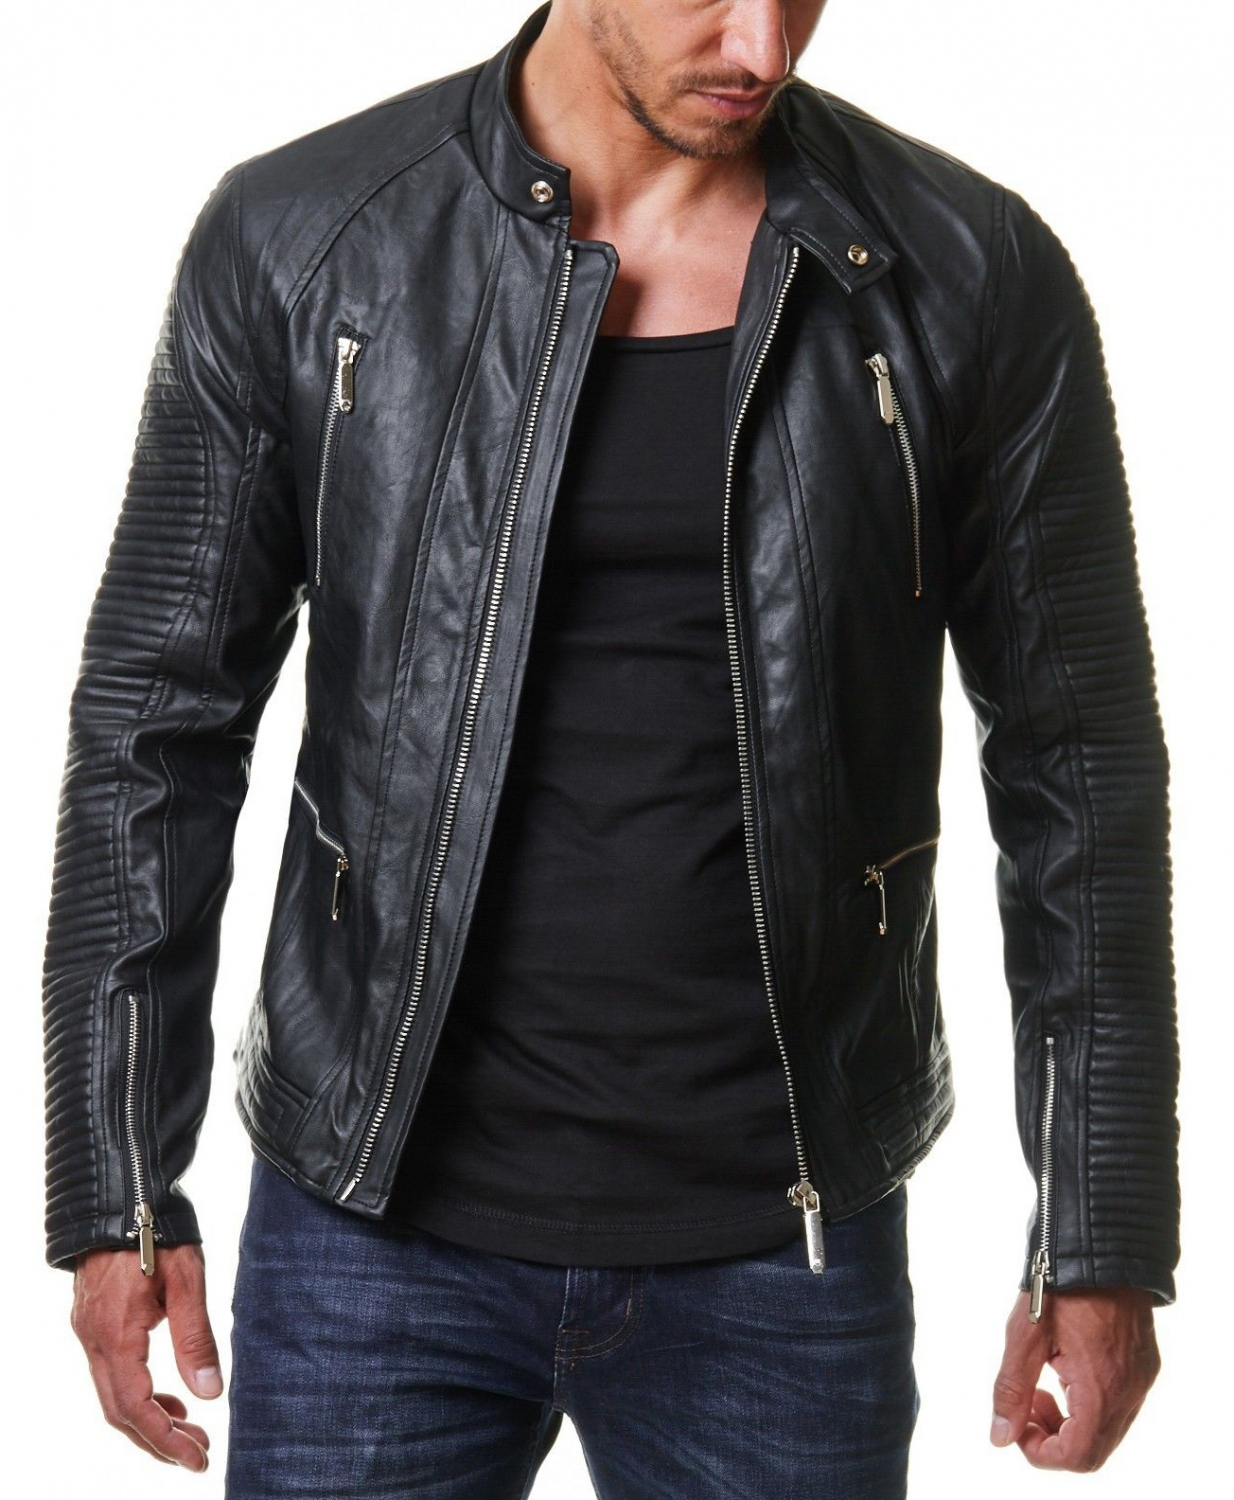 blouson homme biker. Black Bedroom Furniture Sets. Home Design Ideas